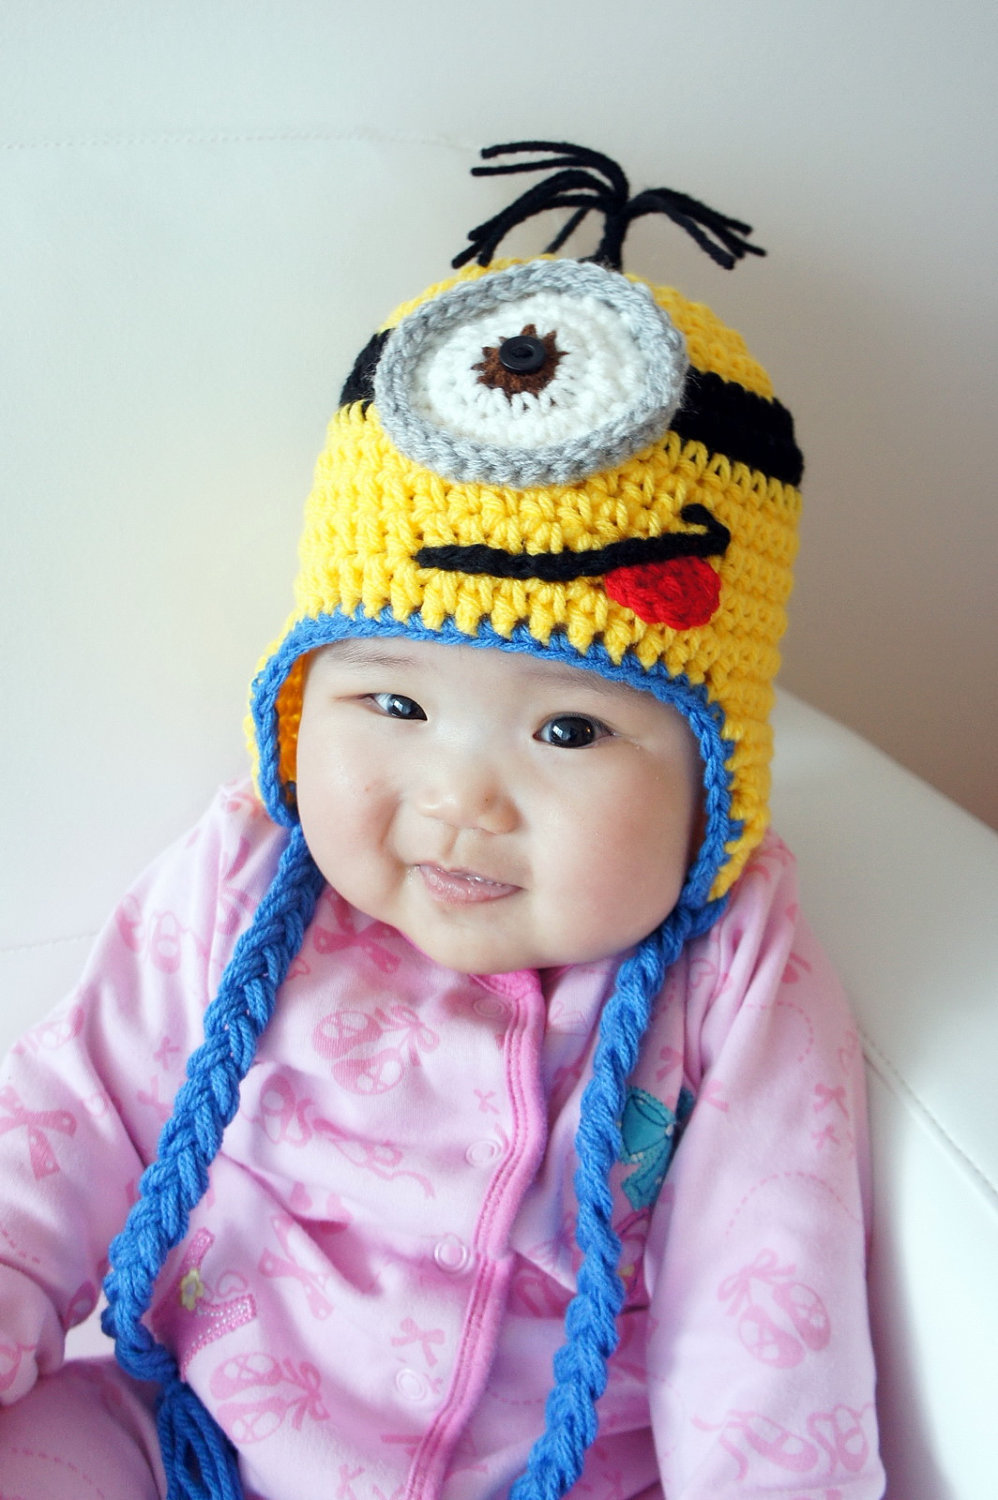 Find great deals on eBay for baby minion hat. Shop with confidence.